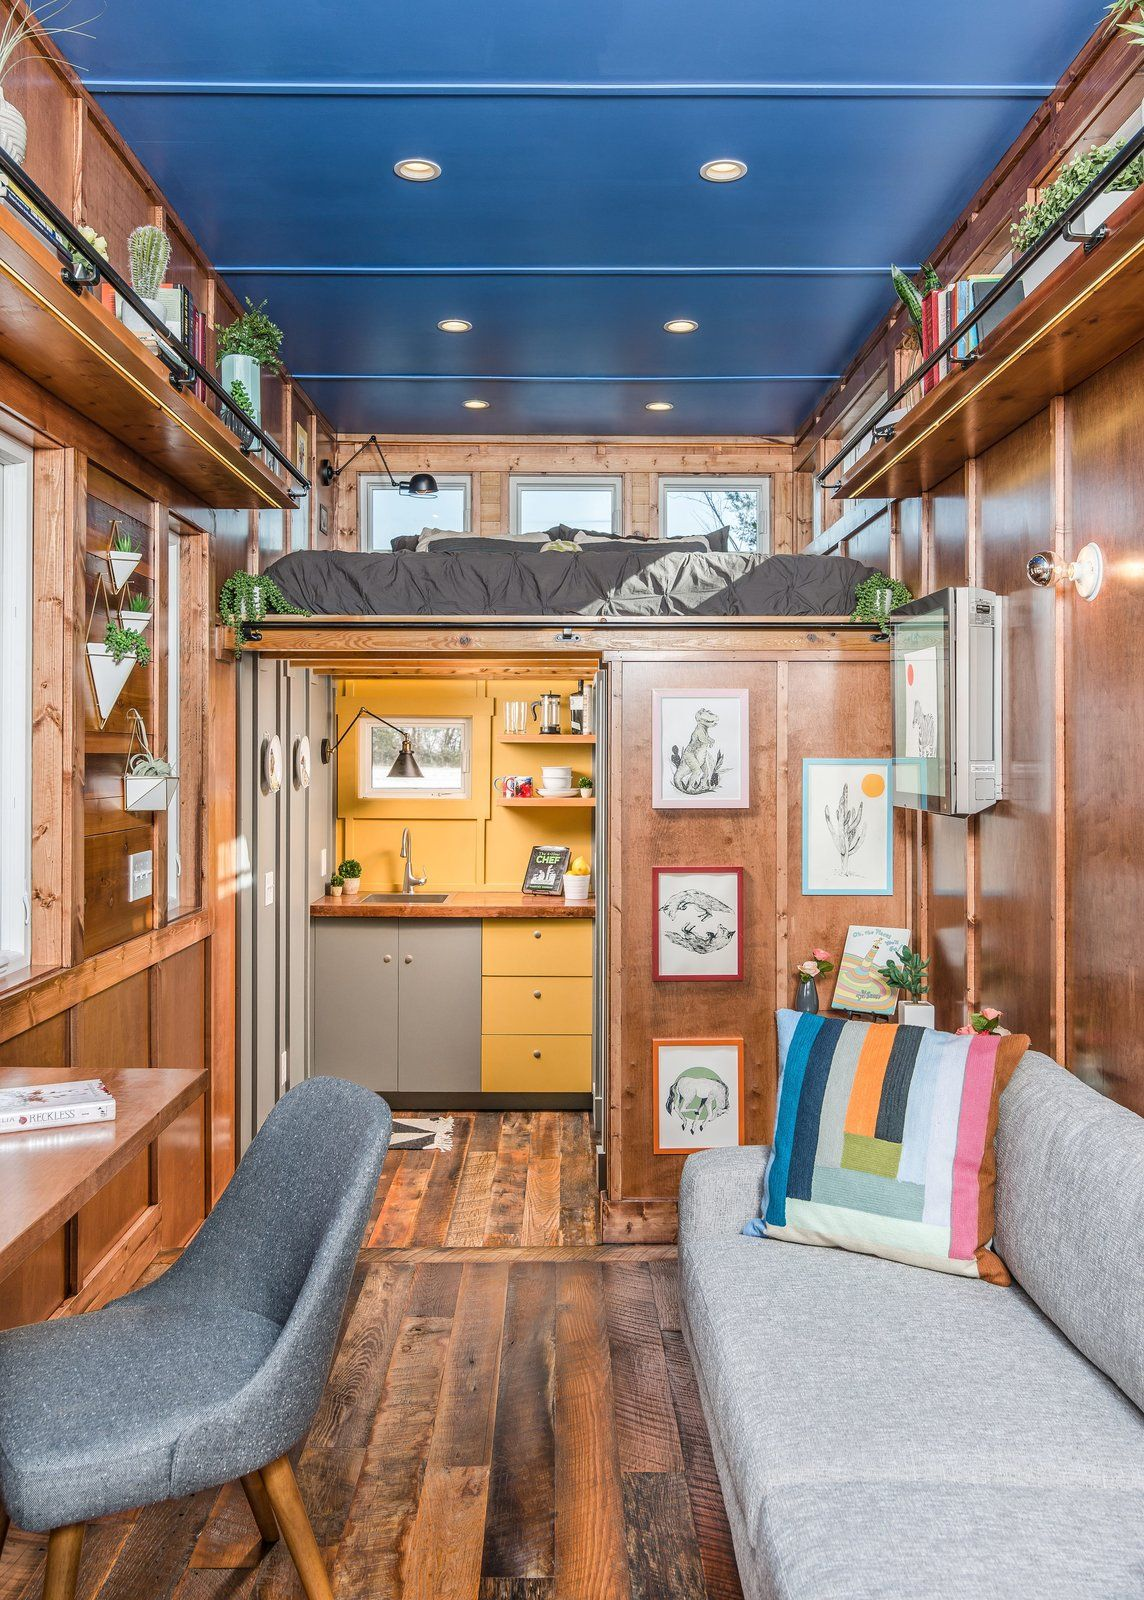 Marvelous Photo 4 Of 12 In This Tiny Home And Writing Studio Was Download Free Architecture Designs Scobabritishbridgeorg